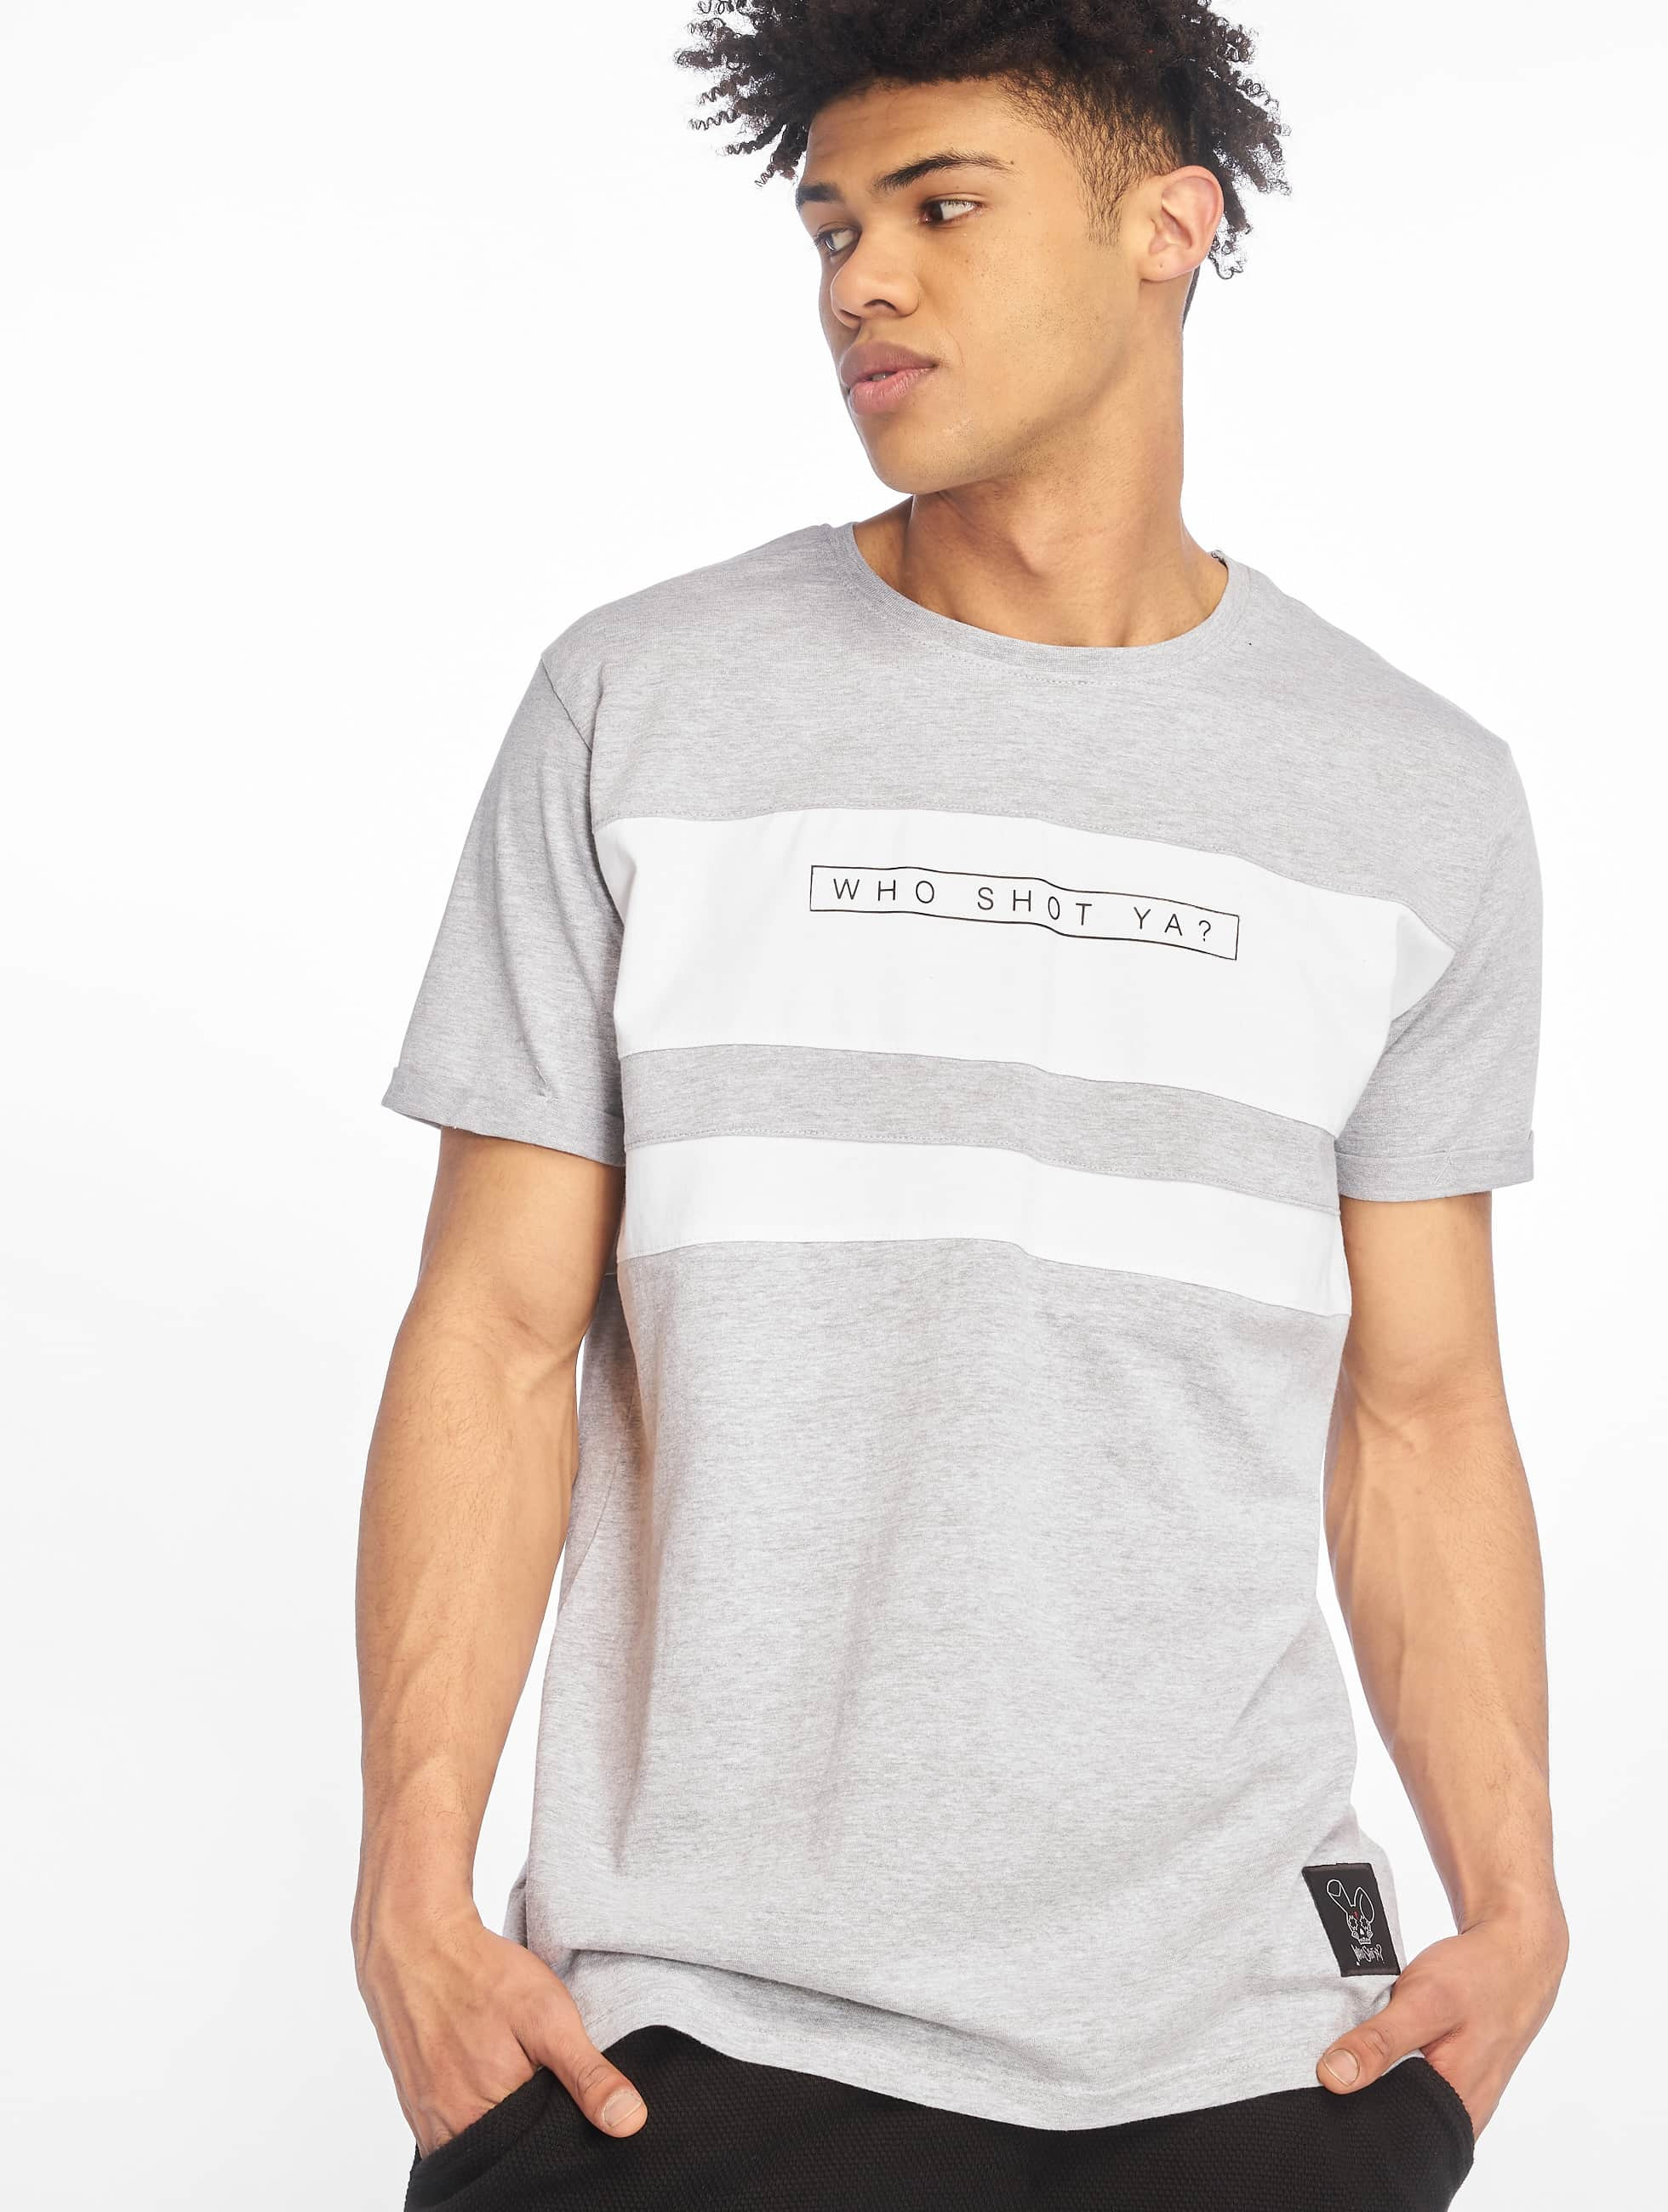 Who Shot Ya? / T-Shirt Forse in grey XL